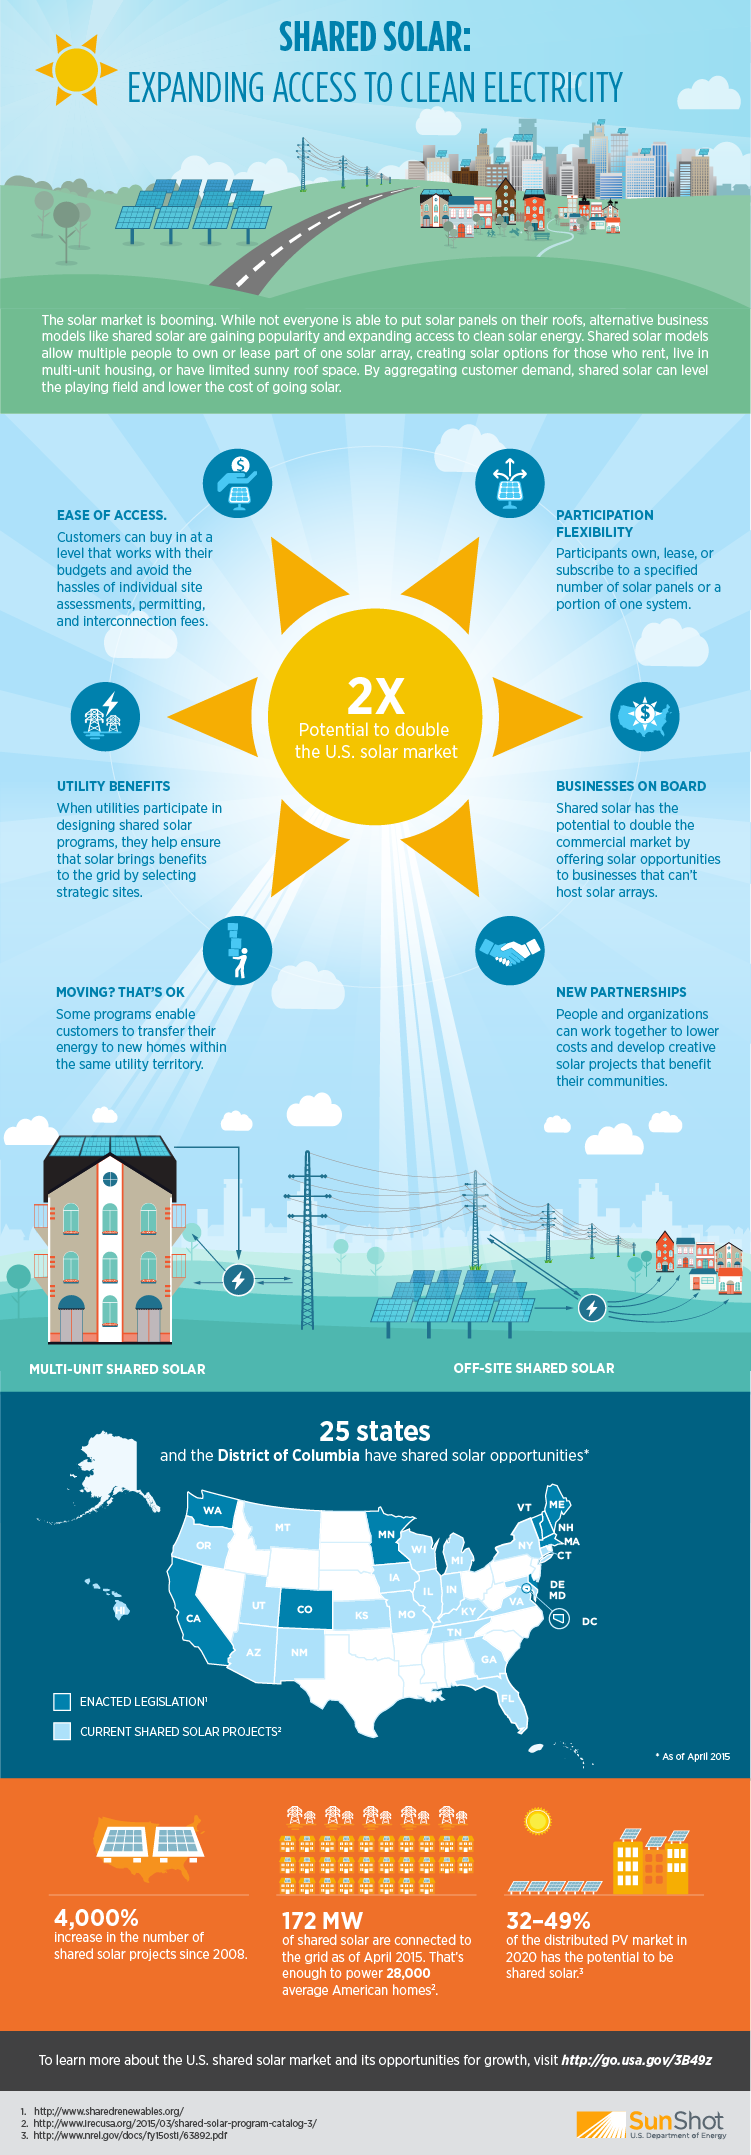 Shared-solar-infoGraphic-final-01.png